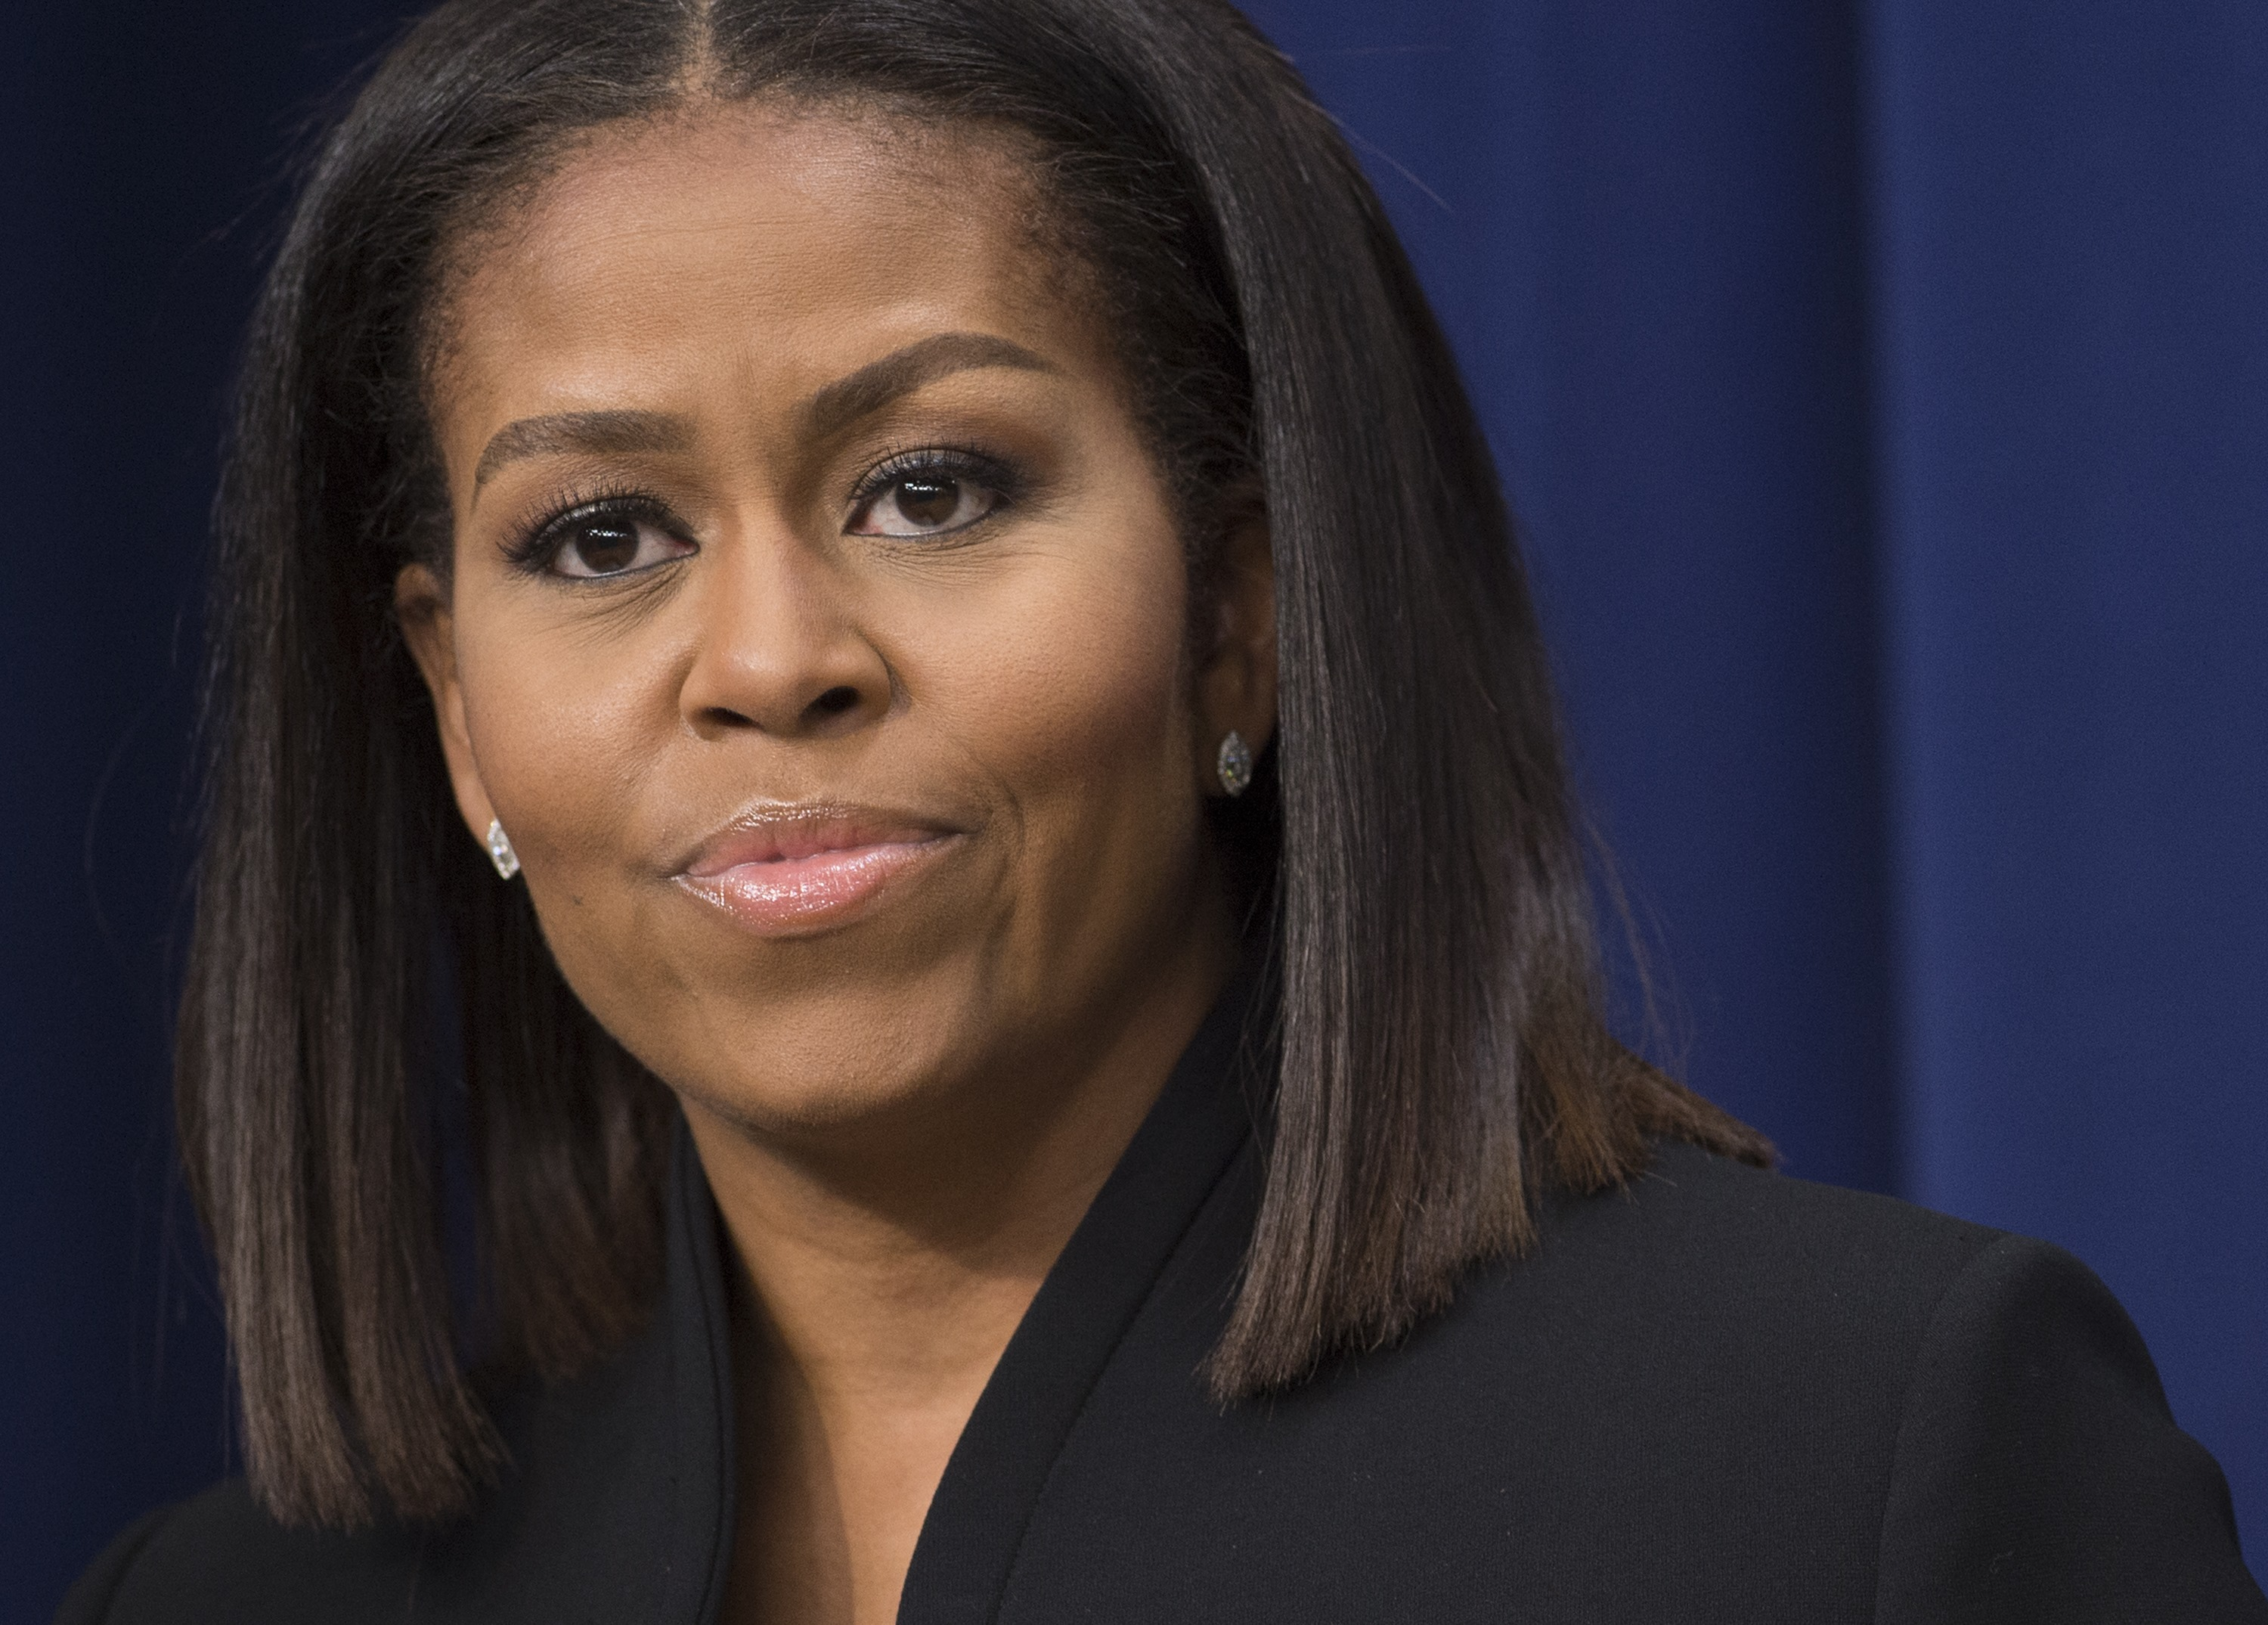 First Lady Michelle Obama speaks following a screening of the movie,  Hidden Figures,  in the Eisenhower Executive Office Building adjacent to the White House in Washington, D.C. on Dec. 15, 2016.